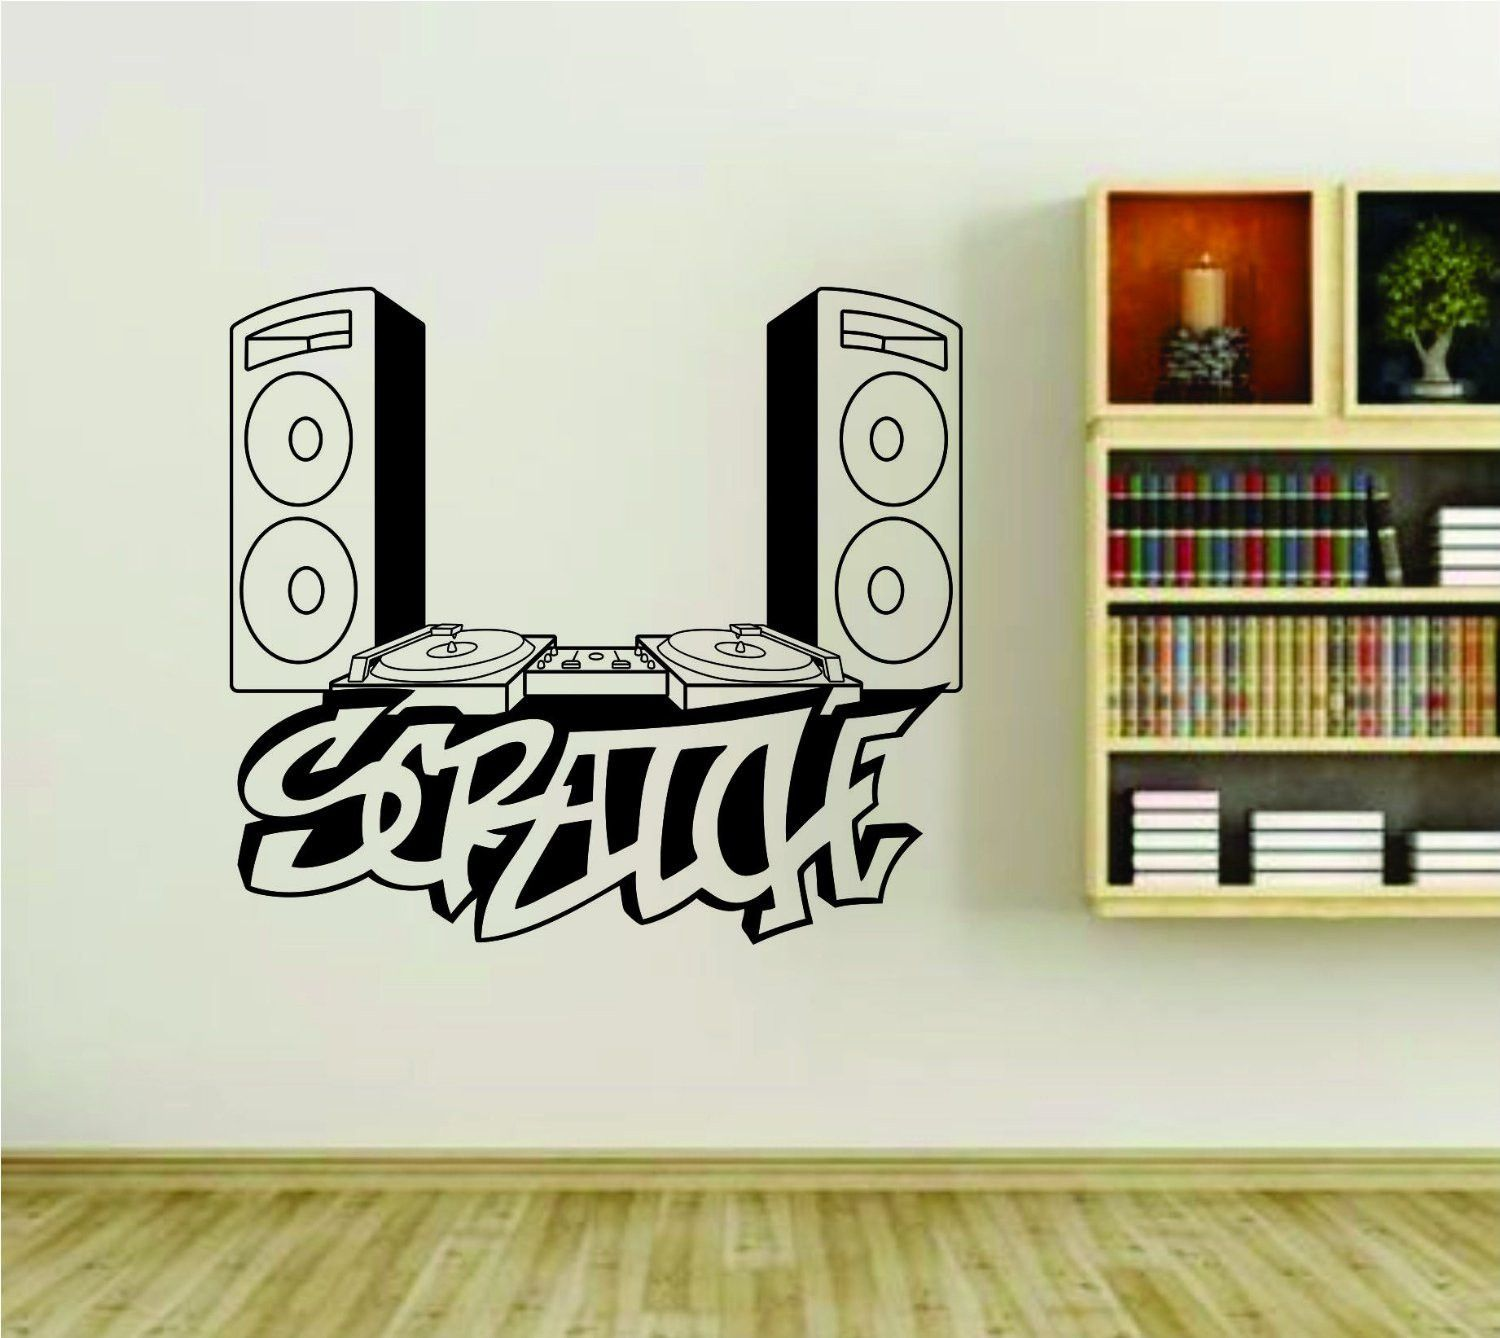 Wall graffiti vinyl lettering - Dj Speakers And Turntable Scratch Graffiti Writing Vinyl Wall Decal Sticker